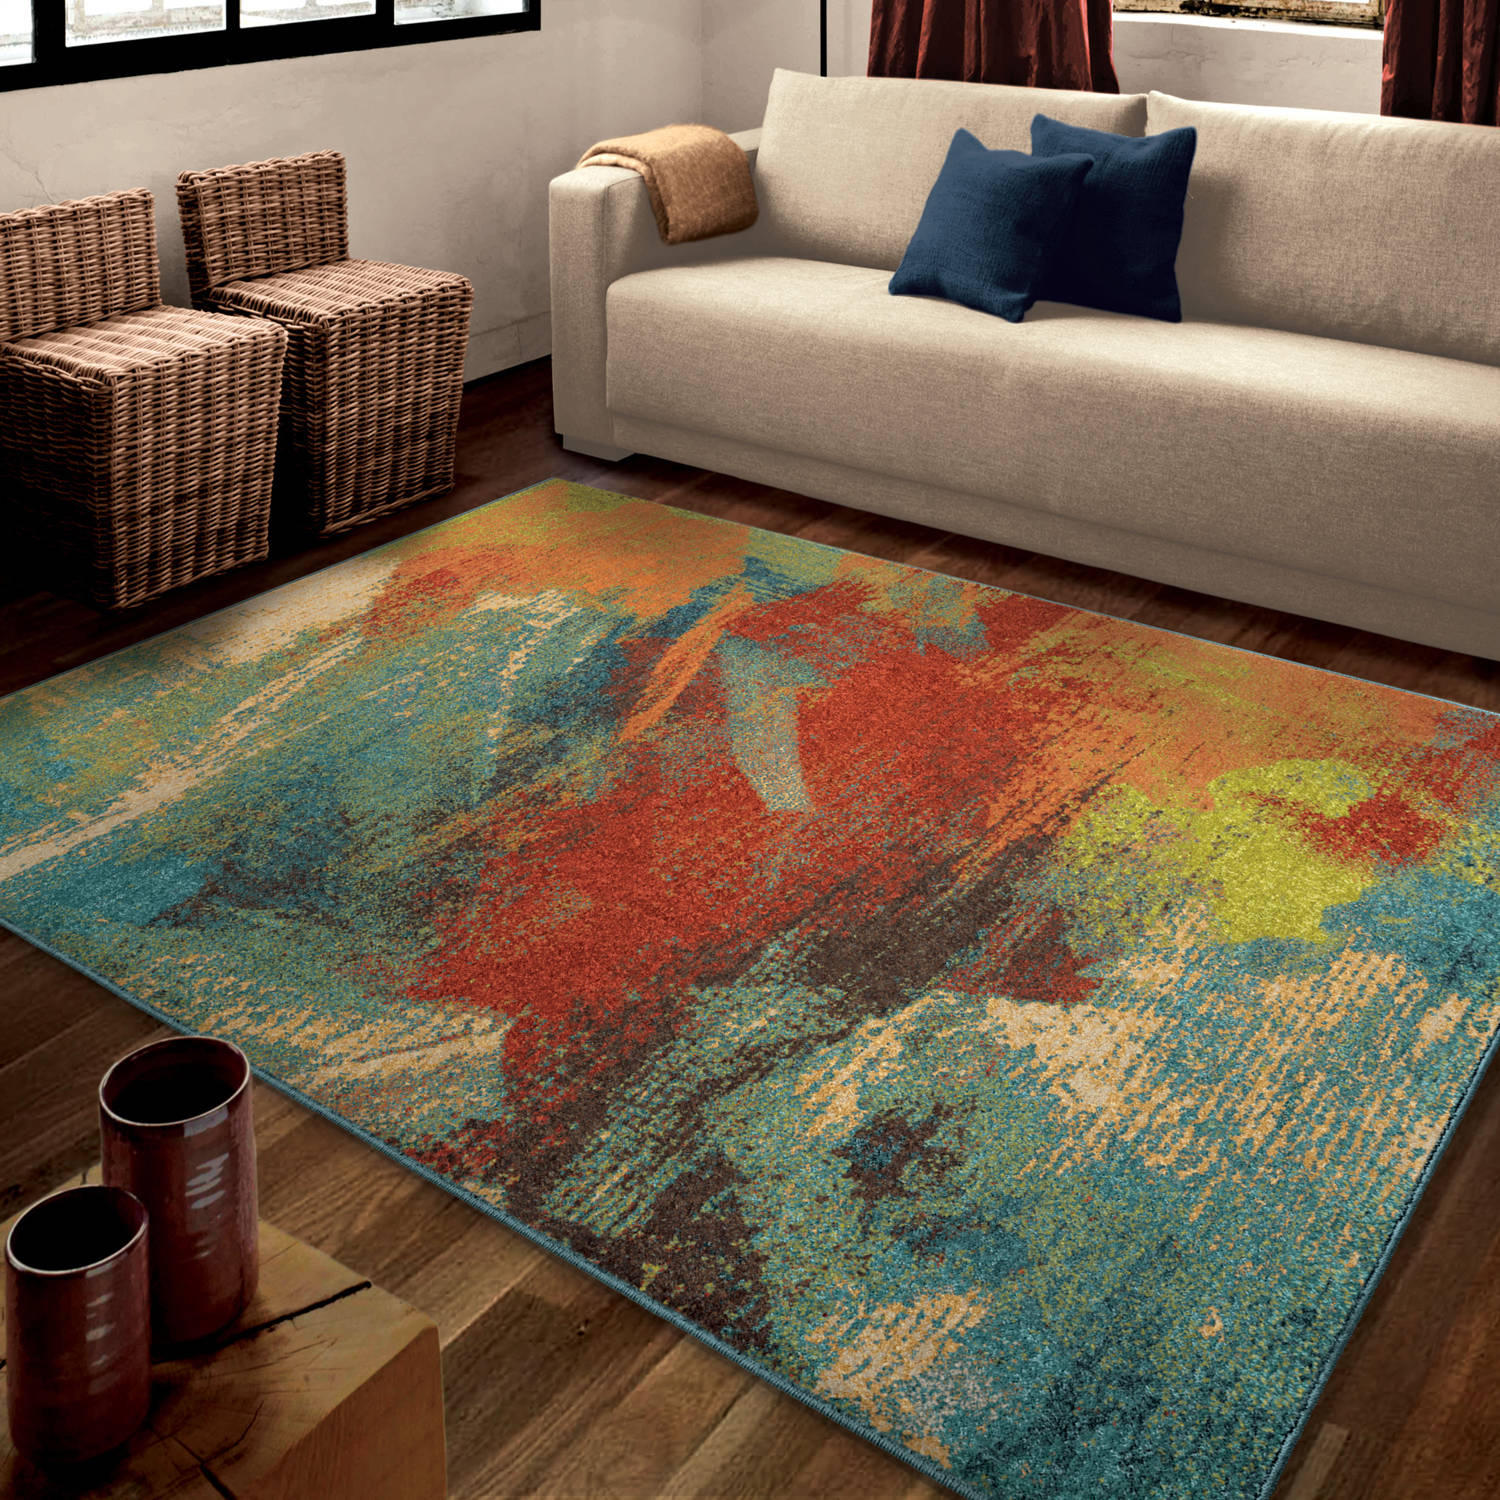 Orian Rugs Bright Opulence Abstract Multi-Colored Area Rug by Orian Rugs